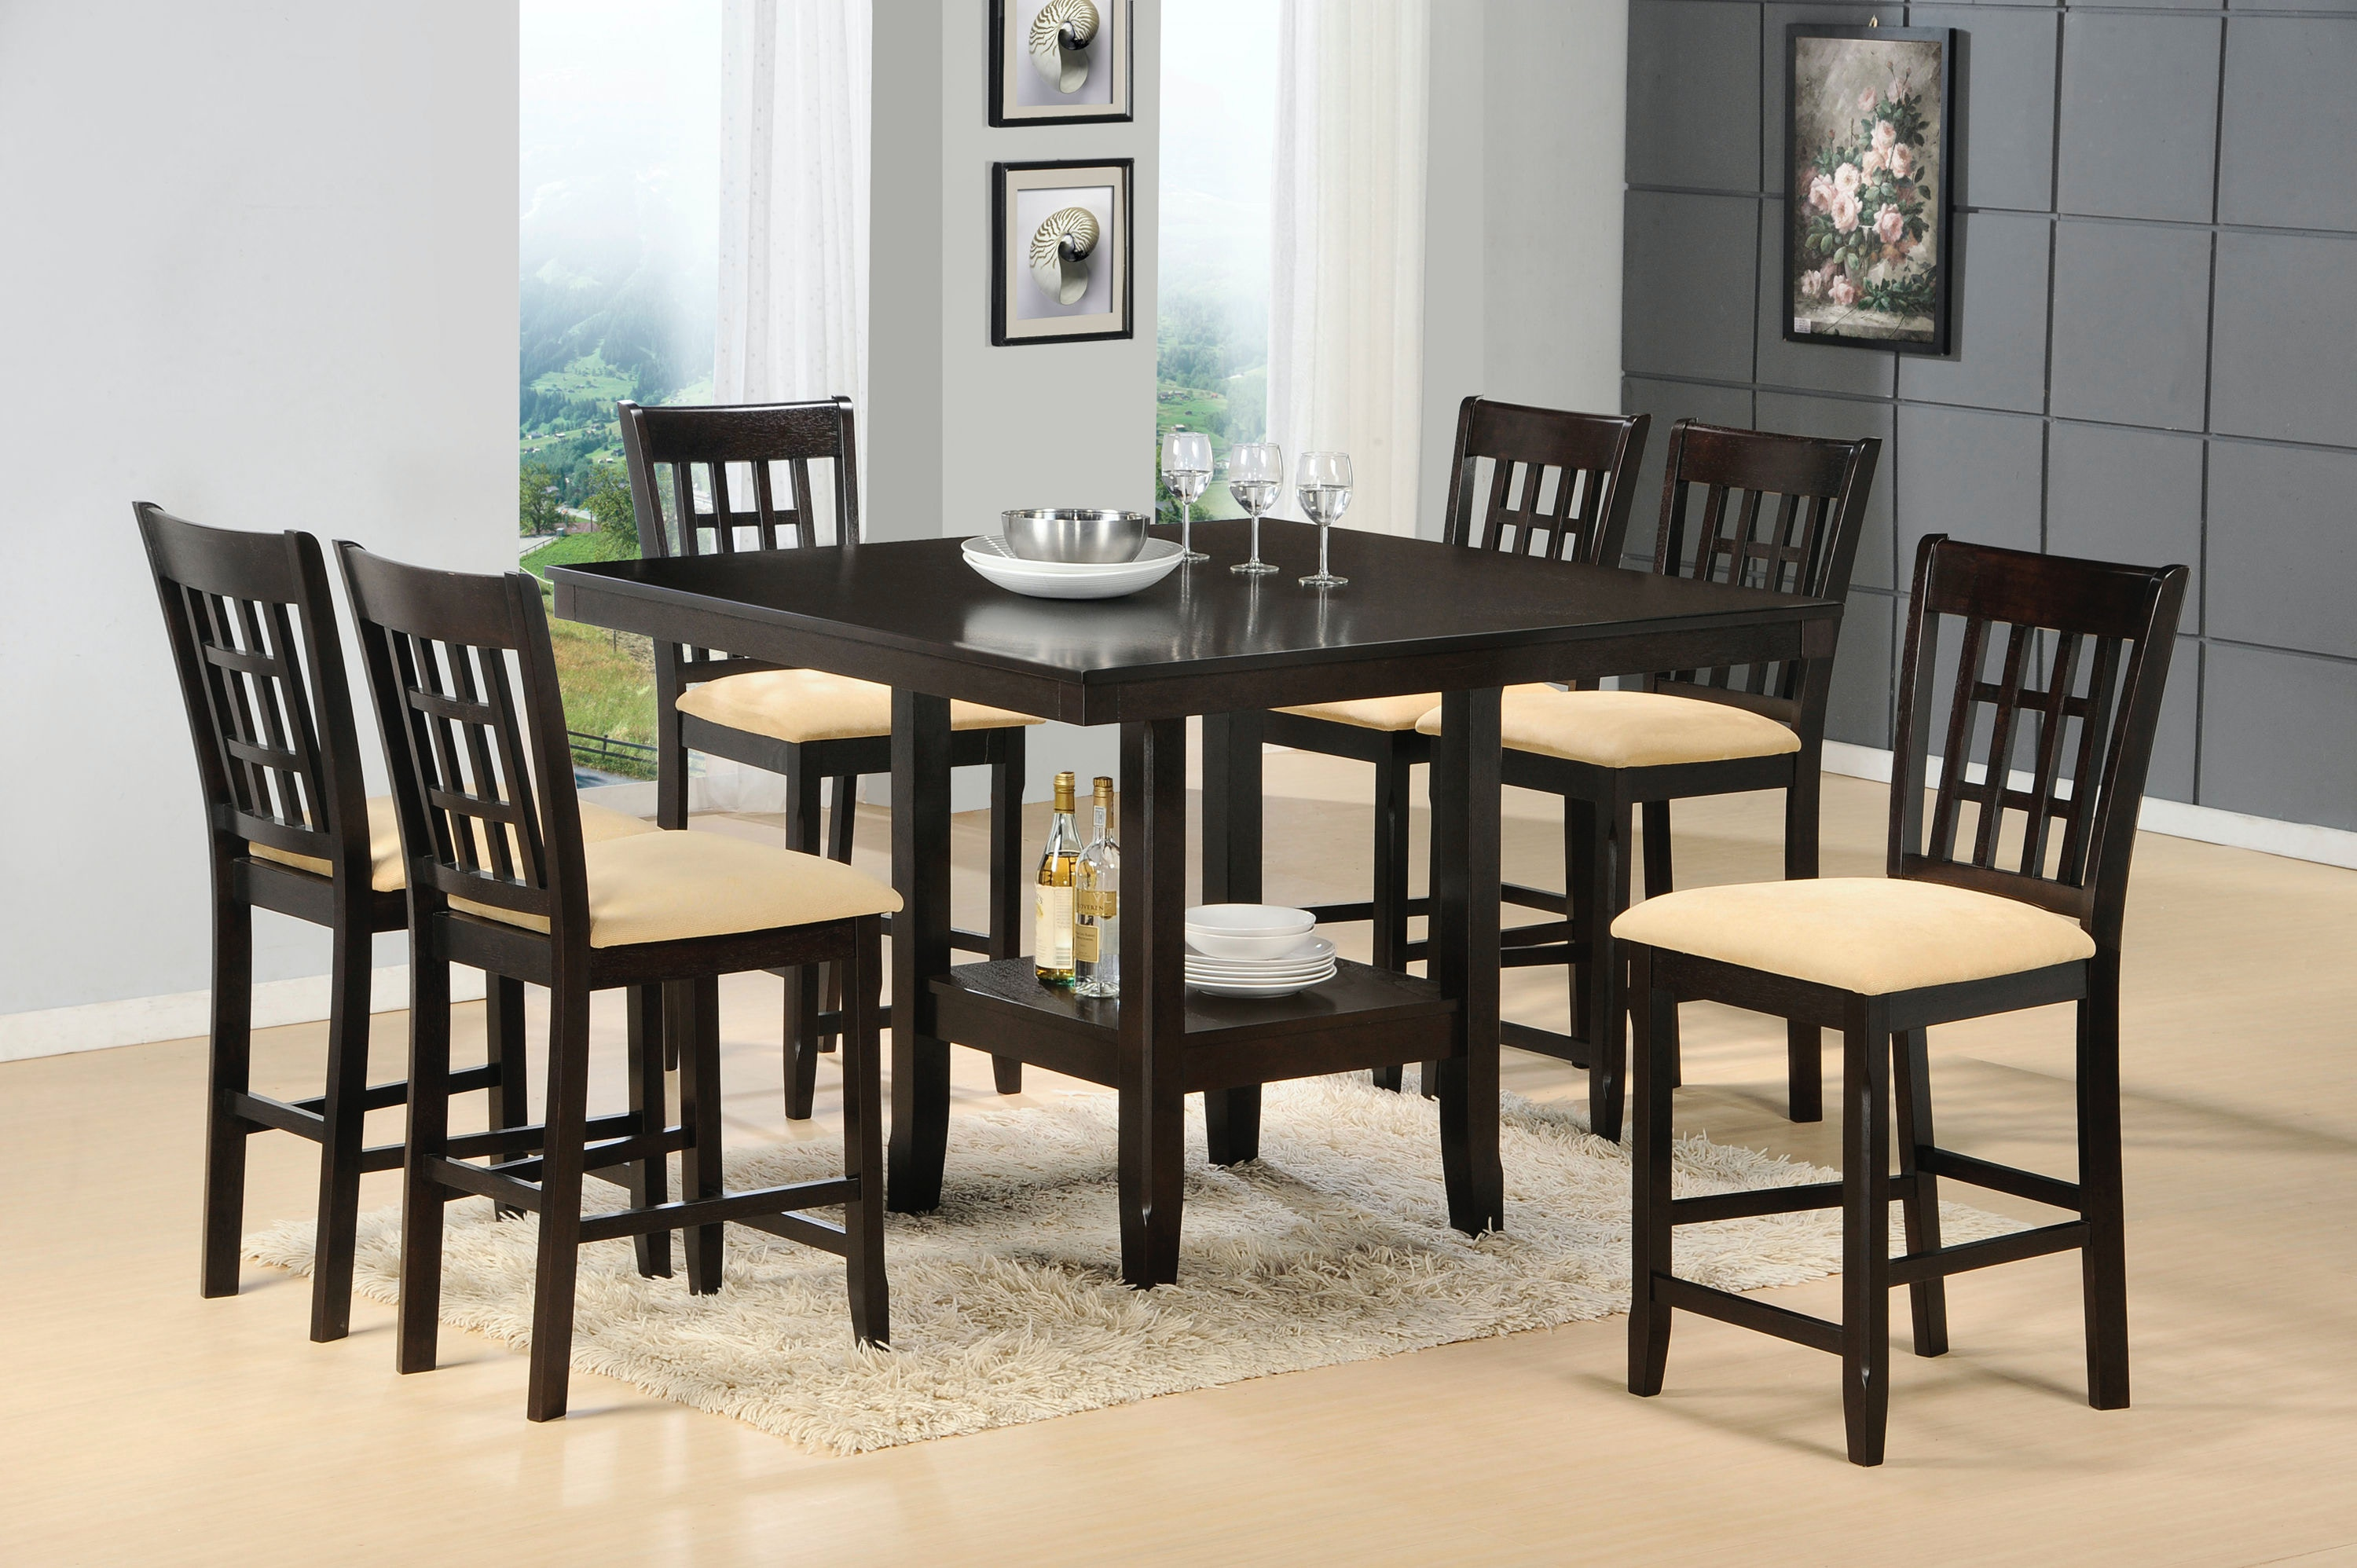 Hillsdale Furniture Tabacon 7 Piece Dining Set 4155DTBGS7